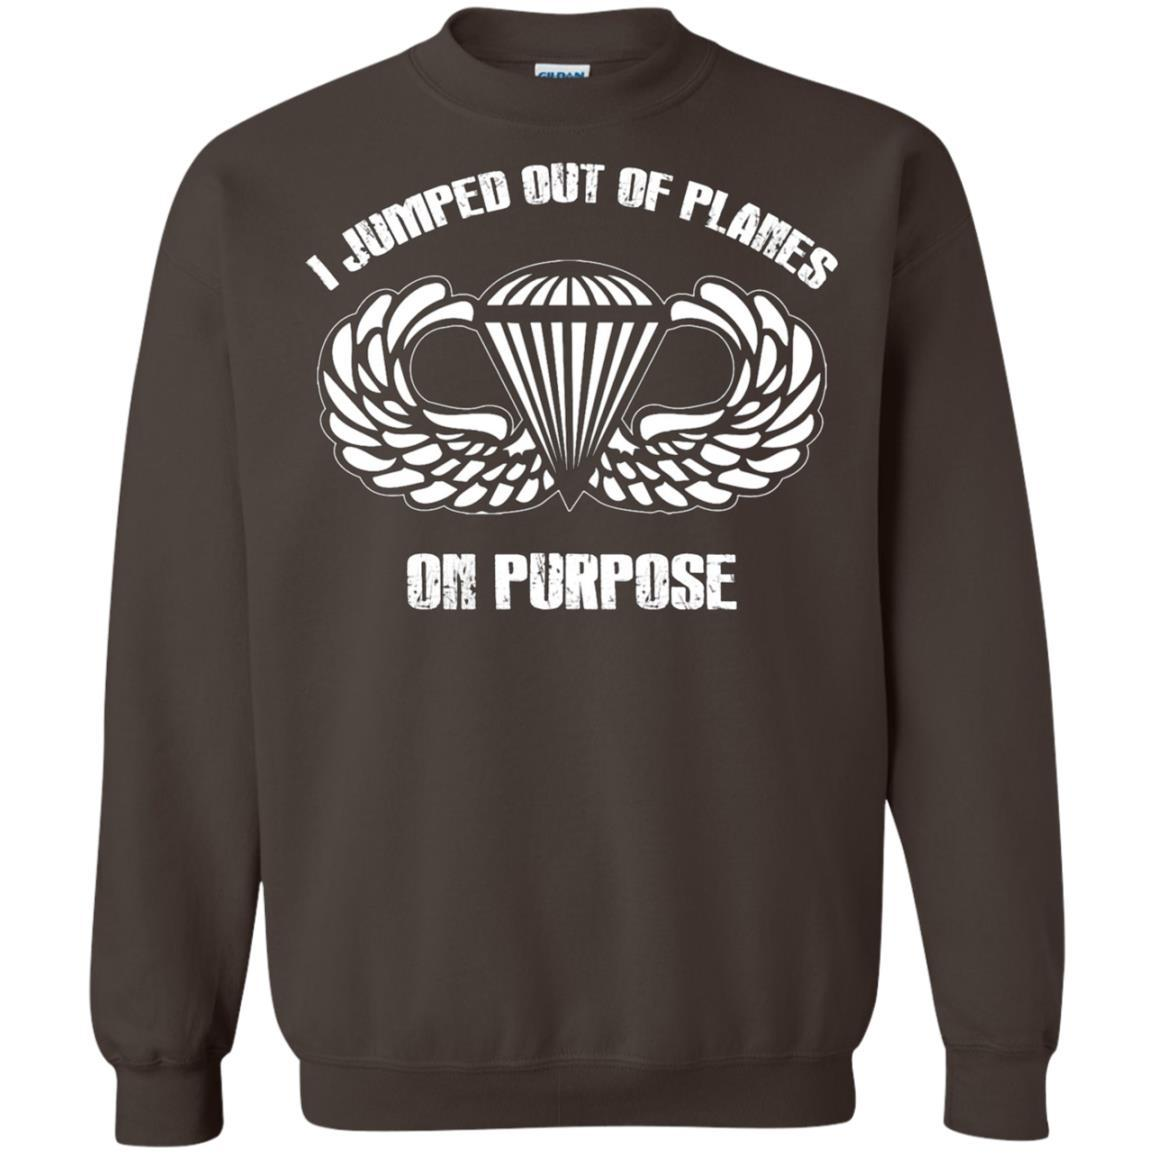 I jumped out of planes on purpose, Airborne - Crewneck Pullover Sweatshirt Dark Chocolate / 5XL